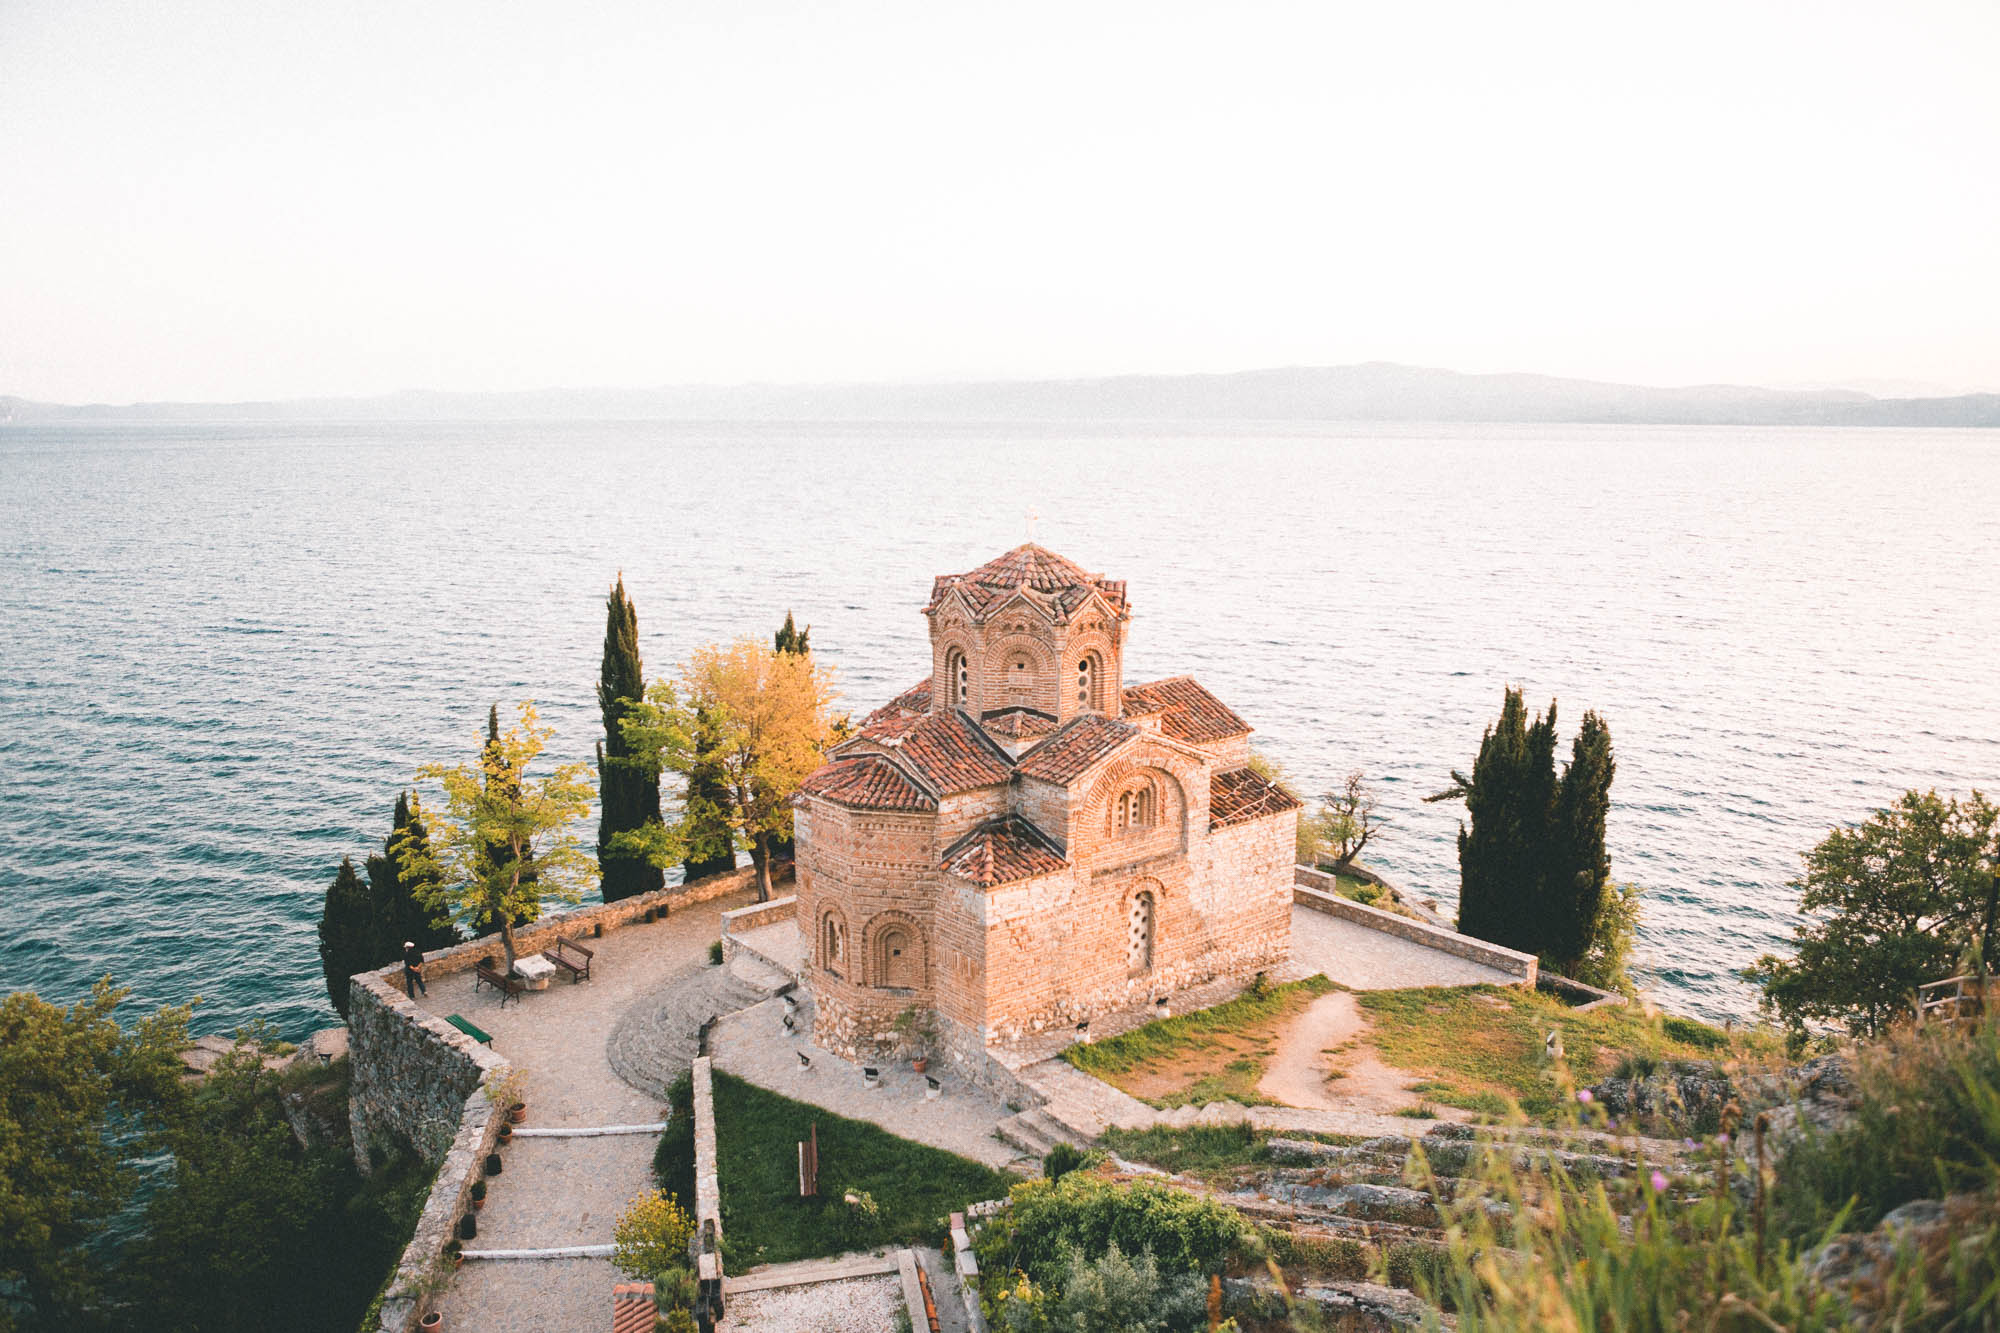 Church of St John in Lake Ohrid, Macedonia